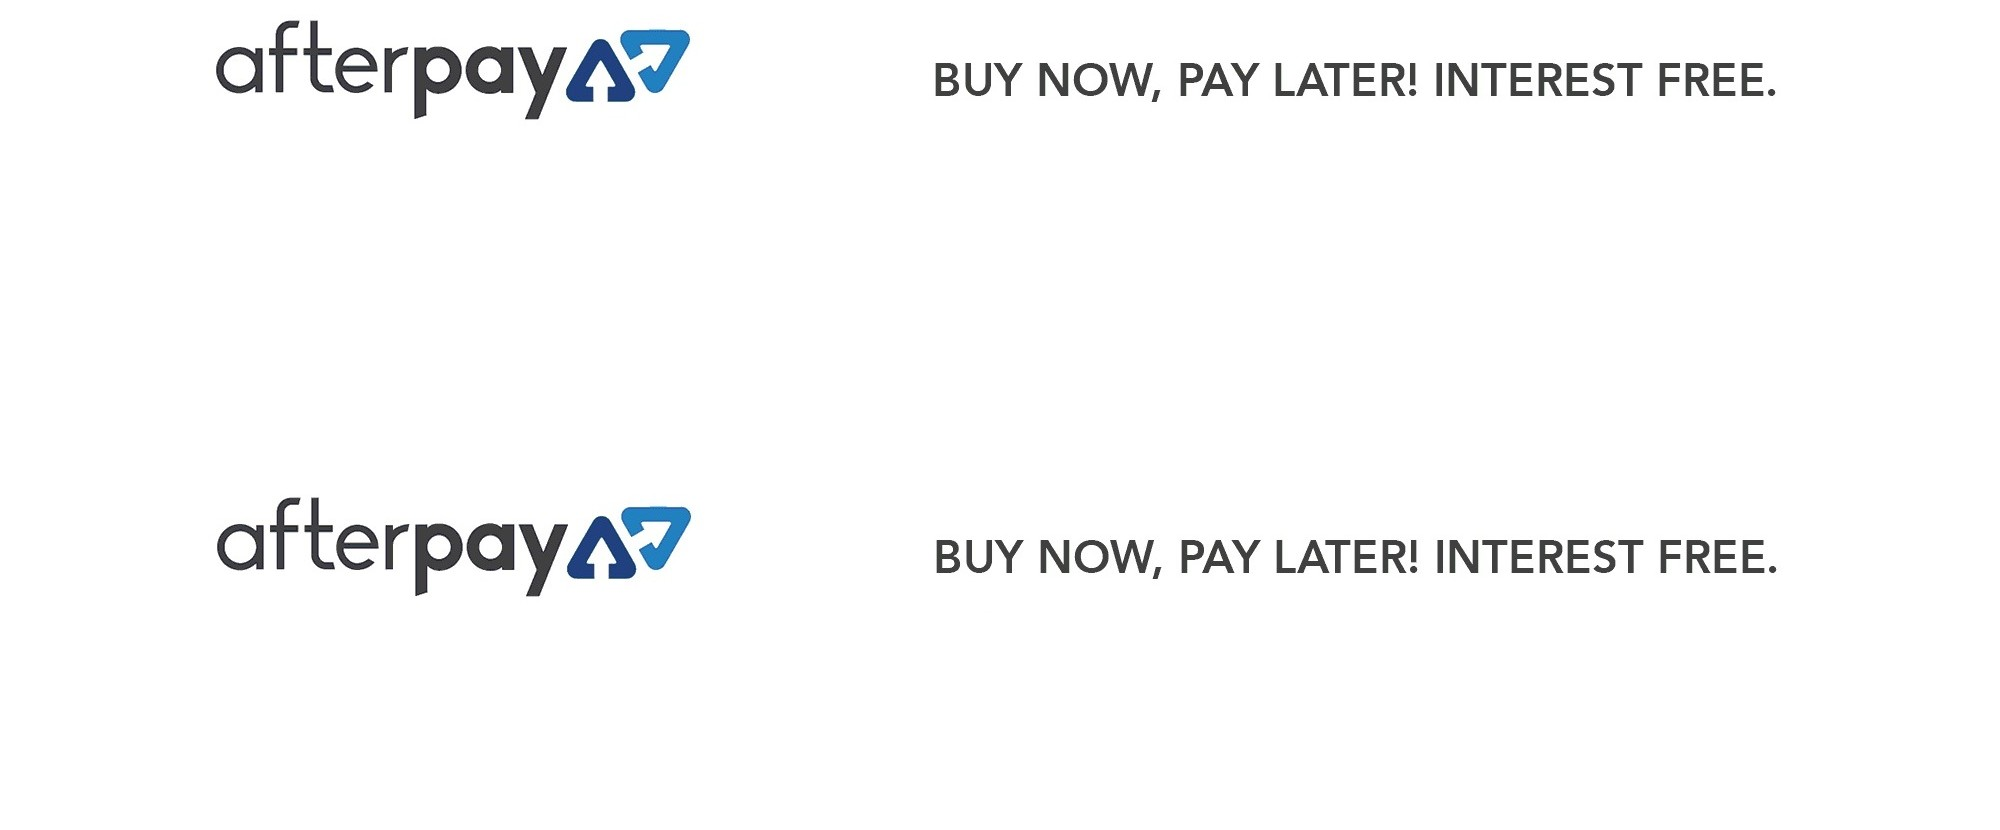 AfterPay Buy Now Pay Later Interest Free